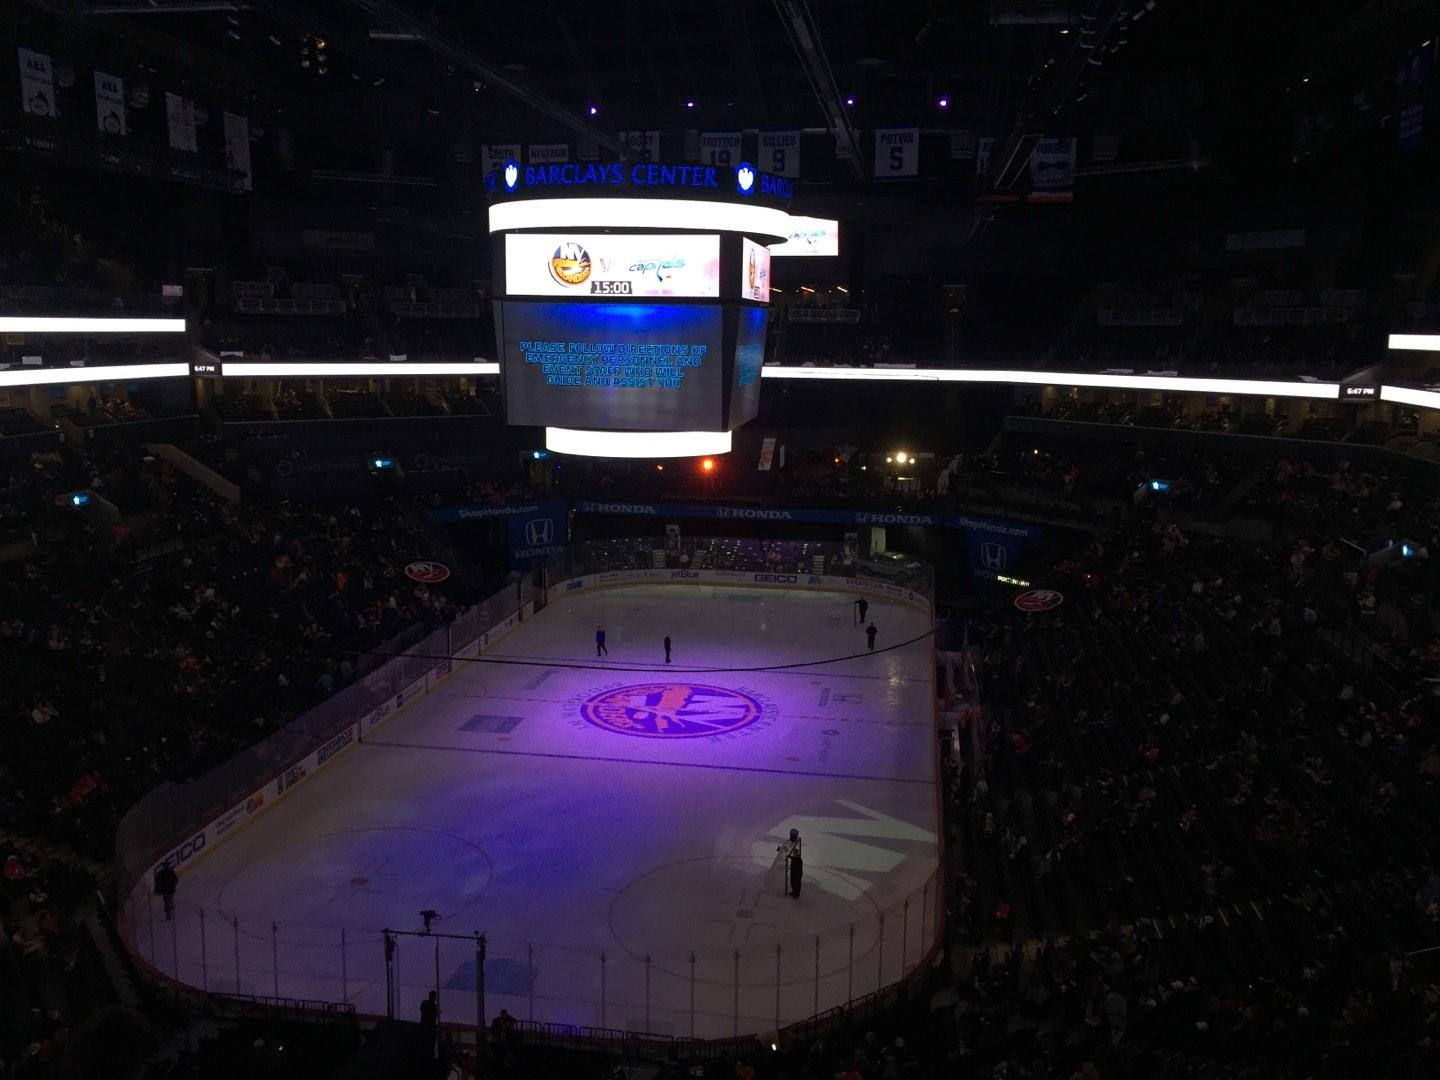 Barclays Center Section 215 Row 5 Seat 5